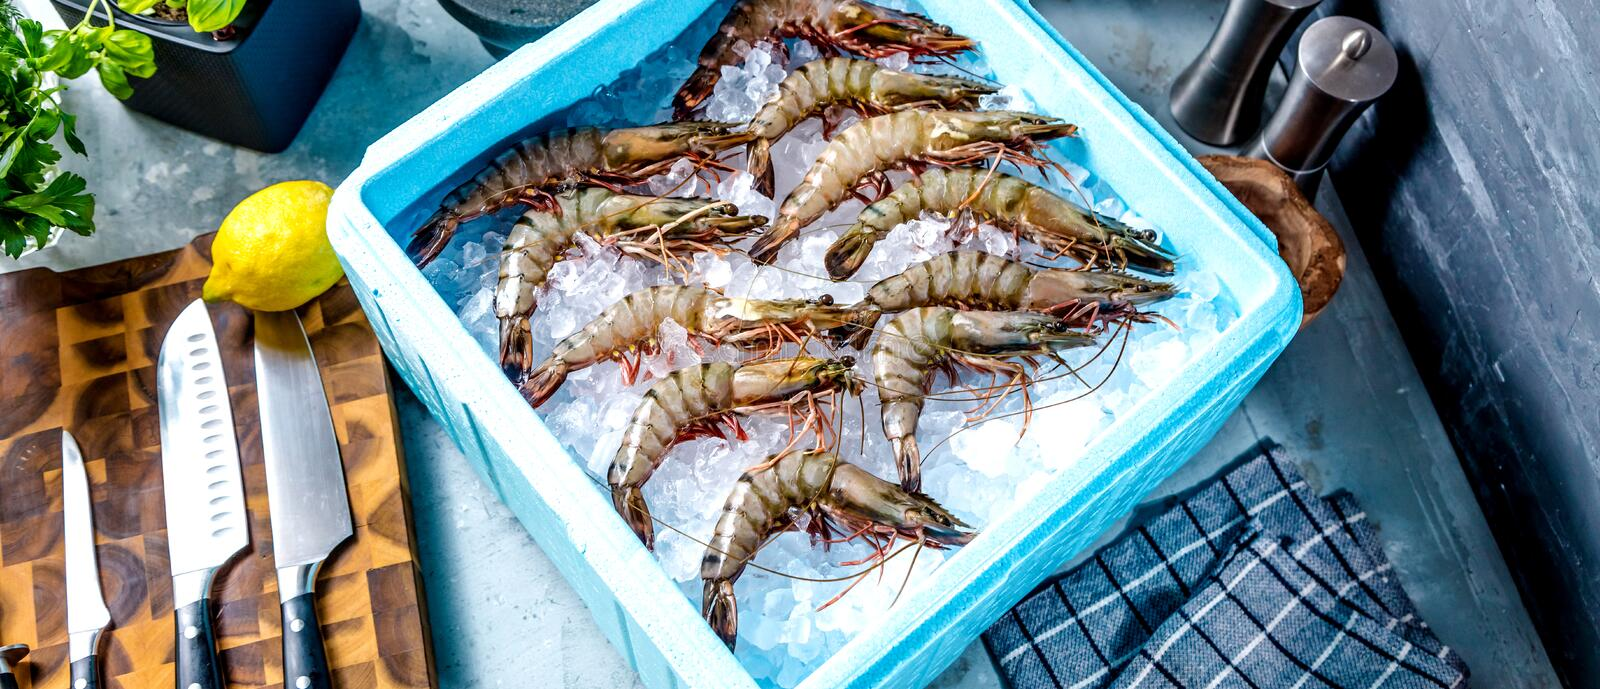 Prawn newly fished and stored in boxes with ice. Prawn newly fished and stored in blue box with ice stock photography